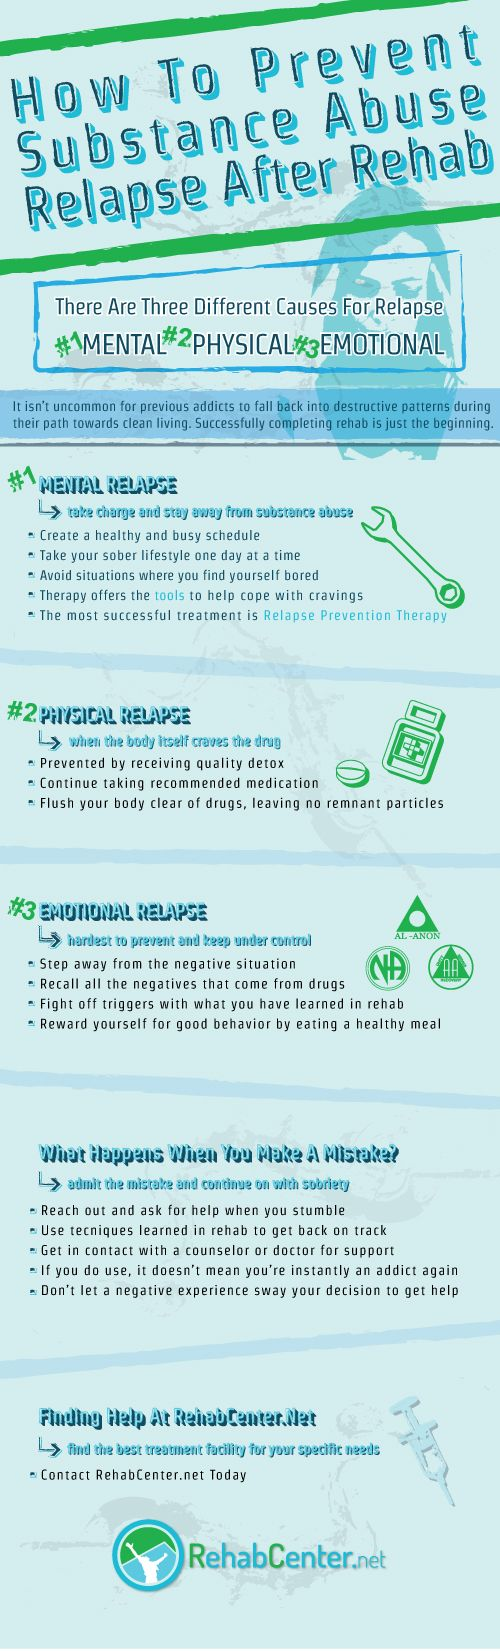 000 How To Prevent Substance Abuse Relapse After Rehab